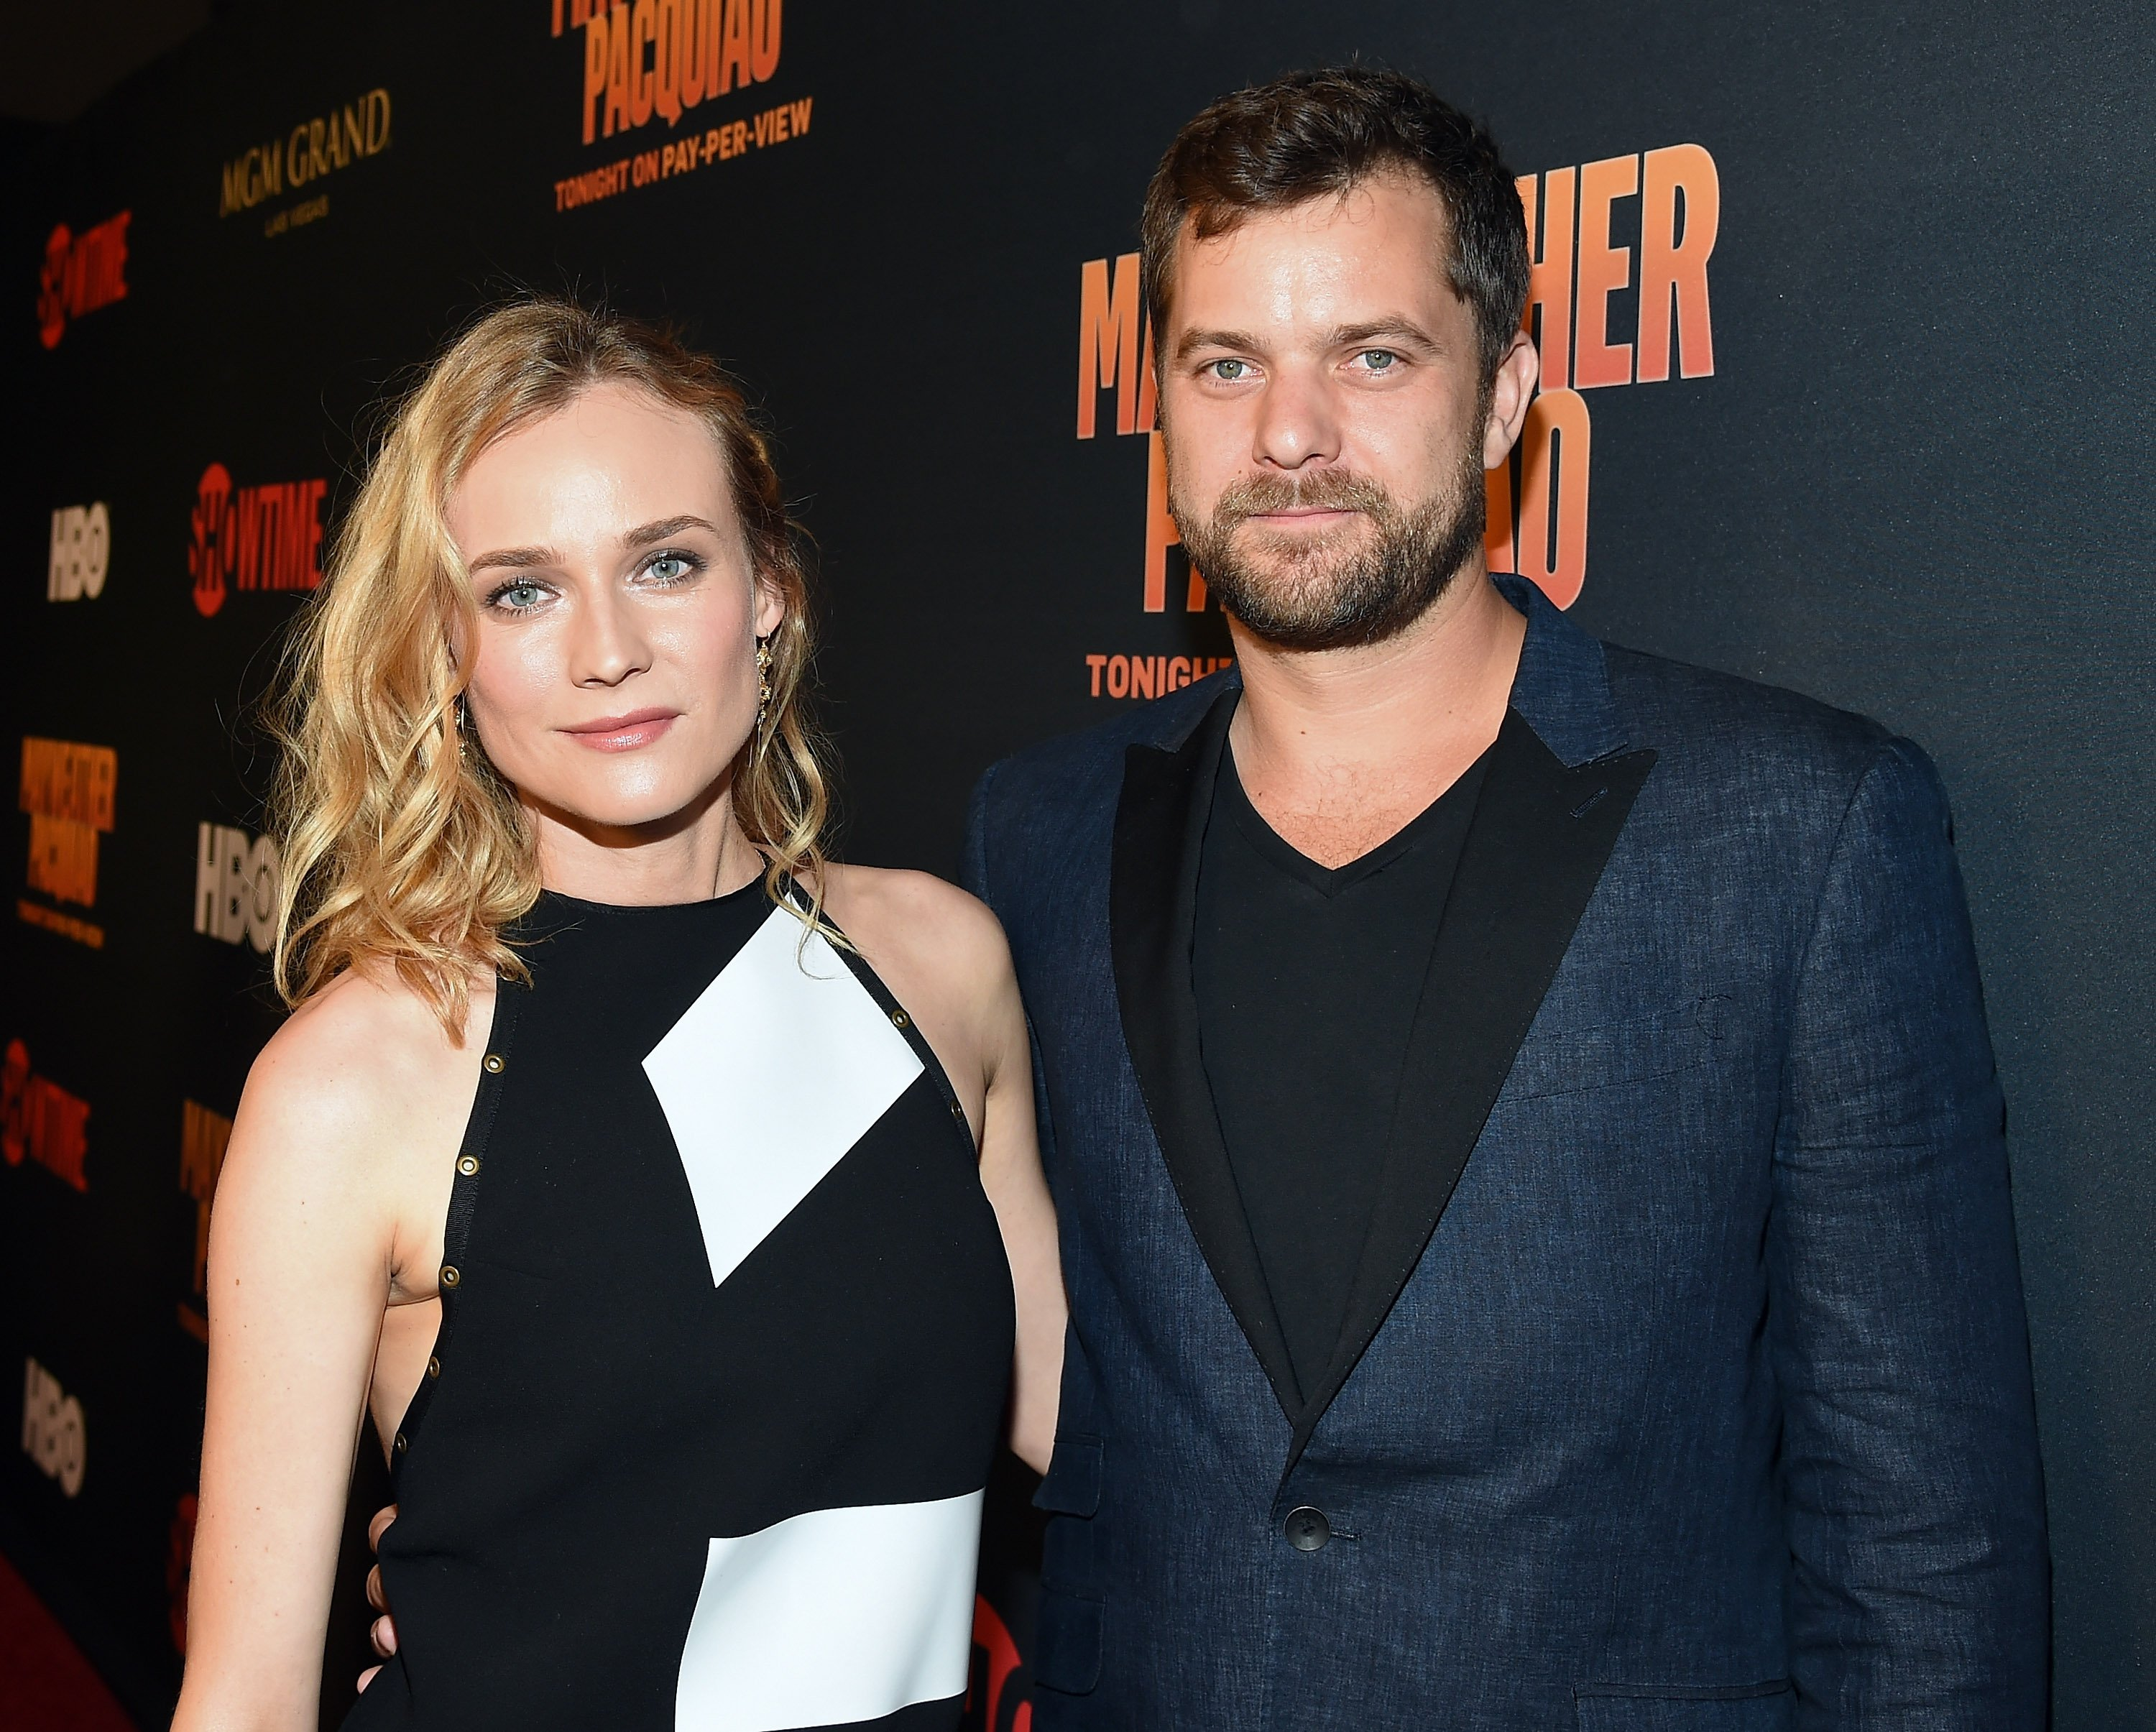 Joshua Jackson and Diane Kruger attend the SHOWTIME And HBO VIP Pre-Fight Party for 'Mayweather VS Pacquiao' at MGM Grand Hotel & Casino in Las Vegas, Nevada | Photo: Getty Images/GlobalImagesUkraine